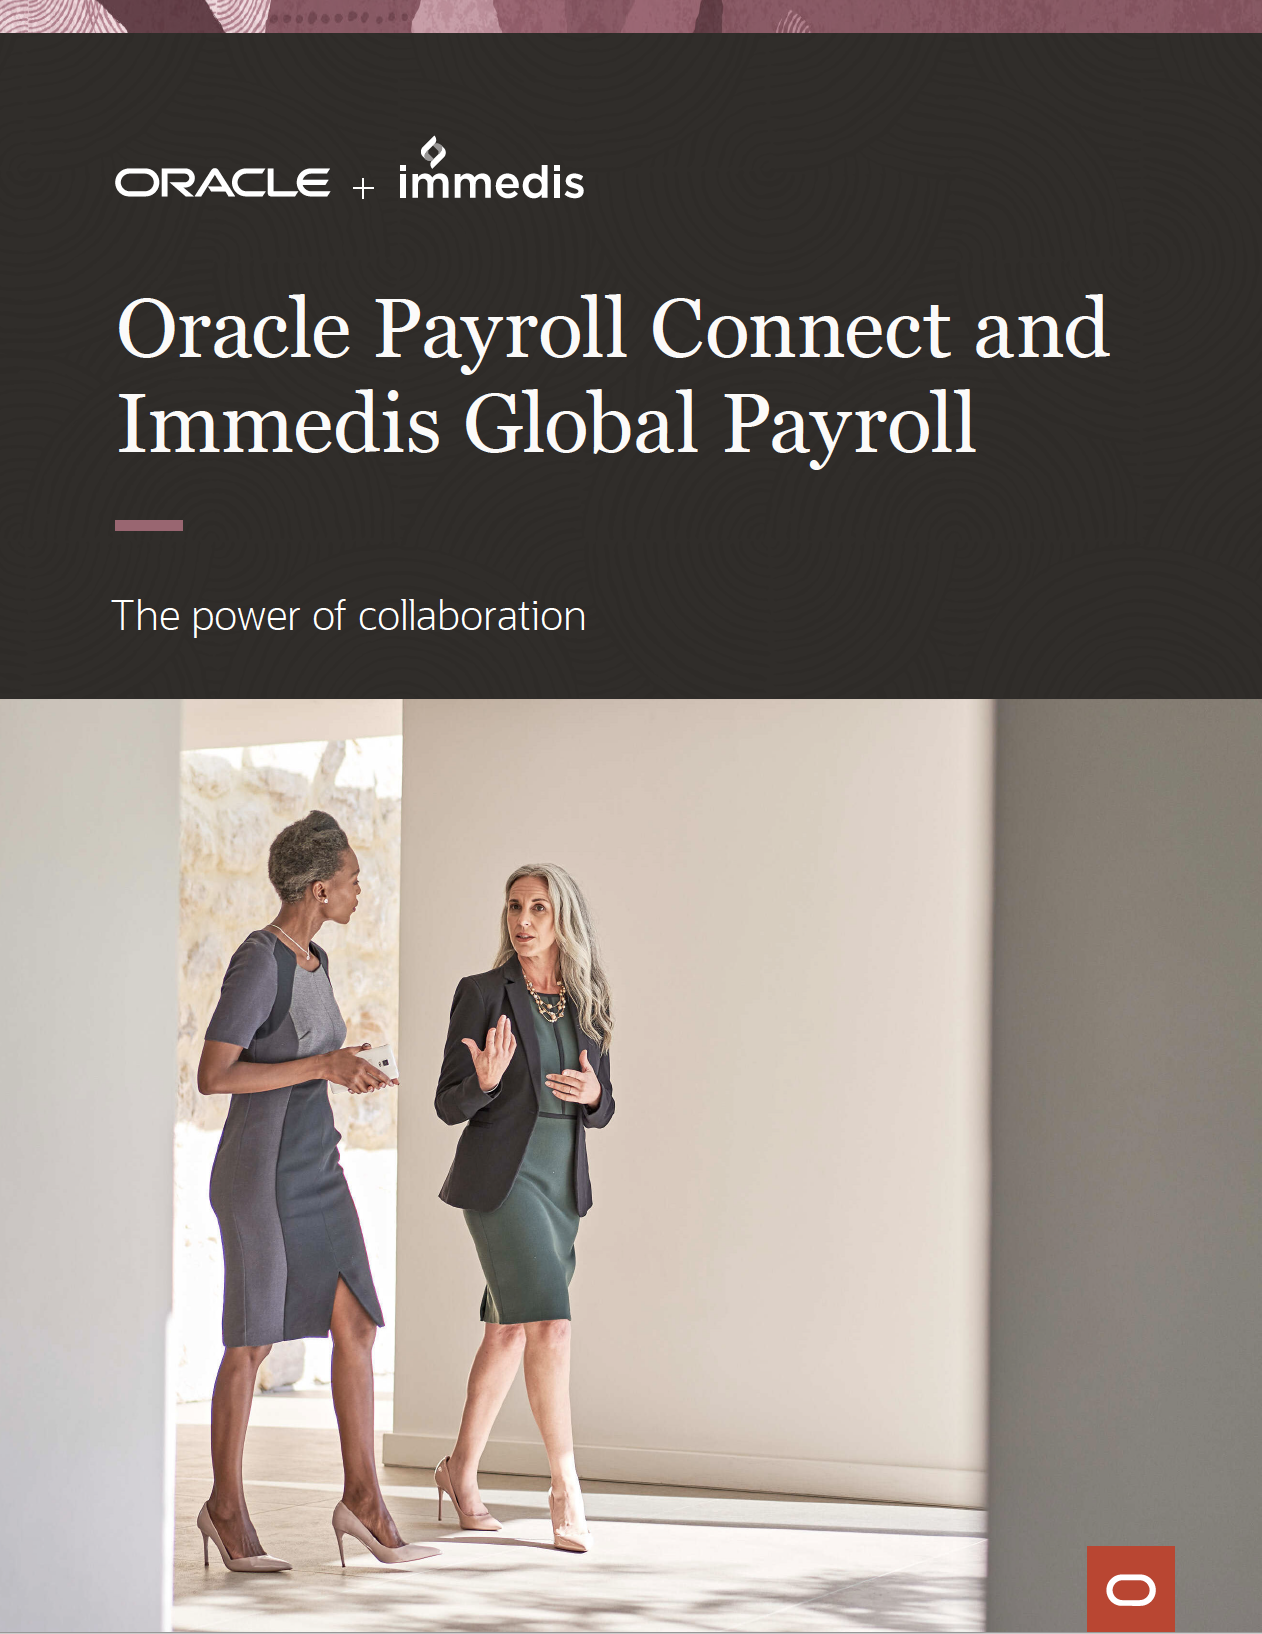 Oracle Payroll Connect and Immedis